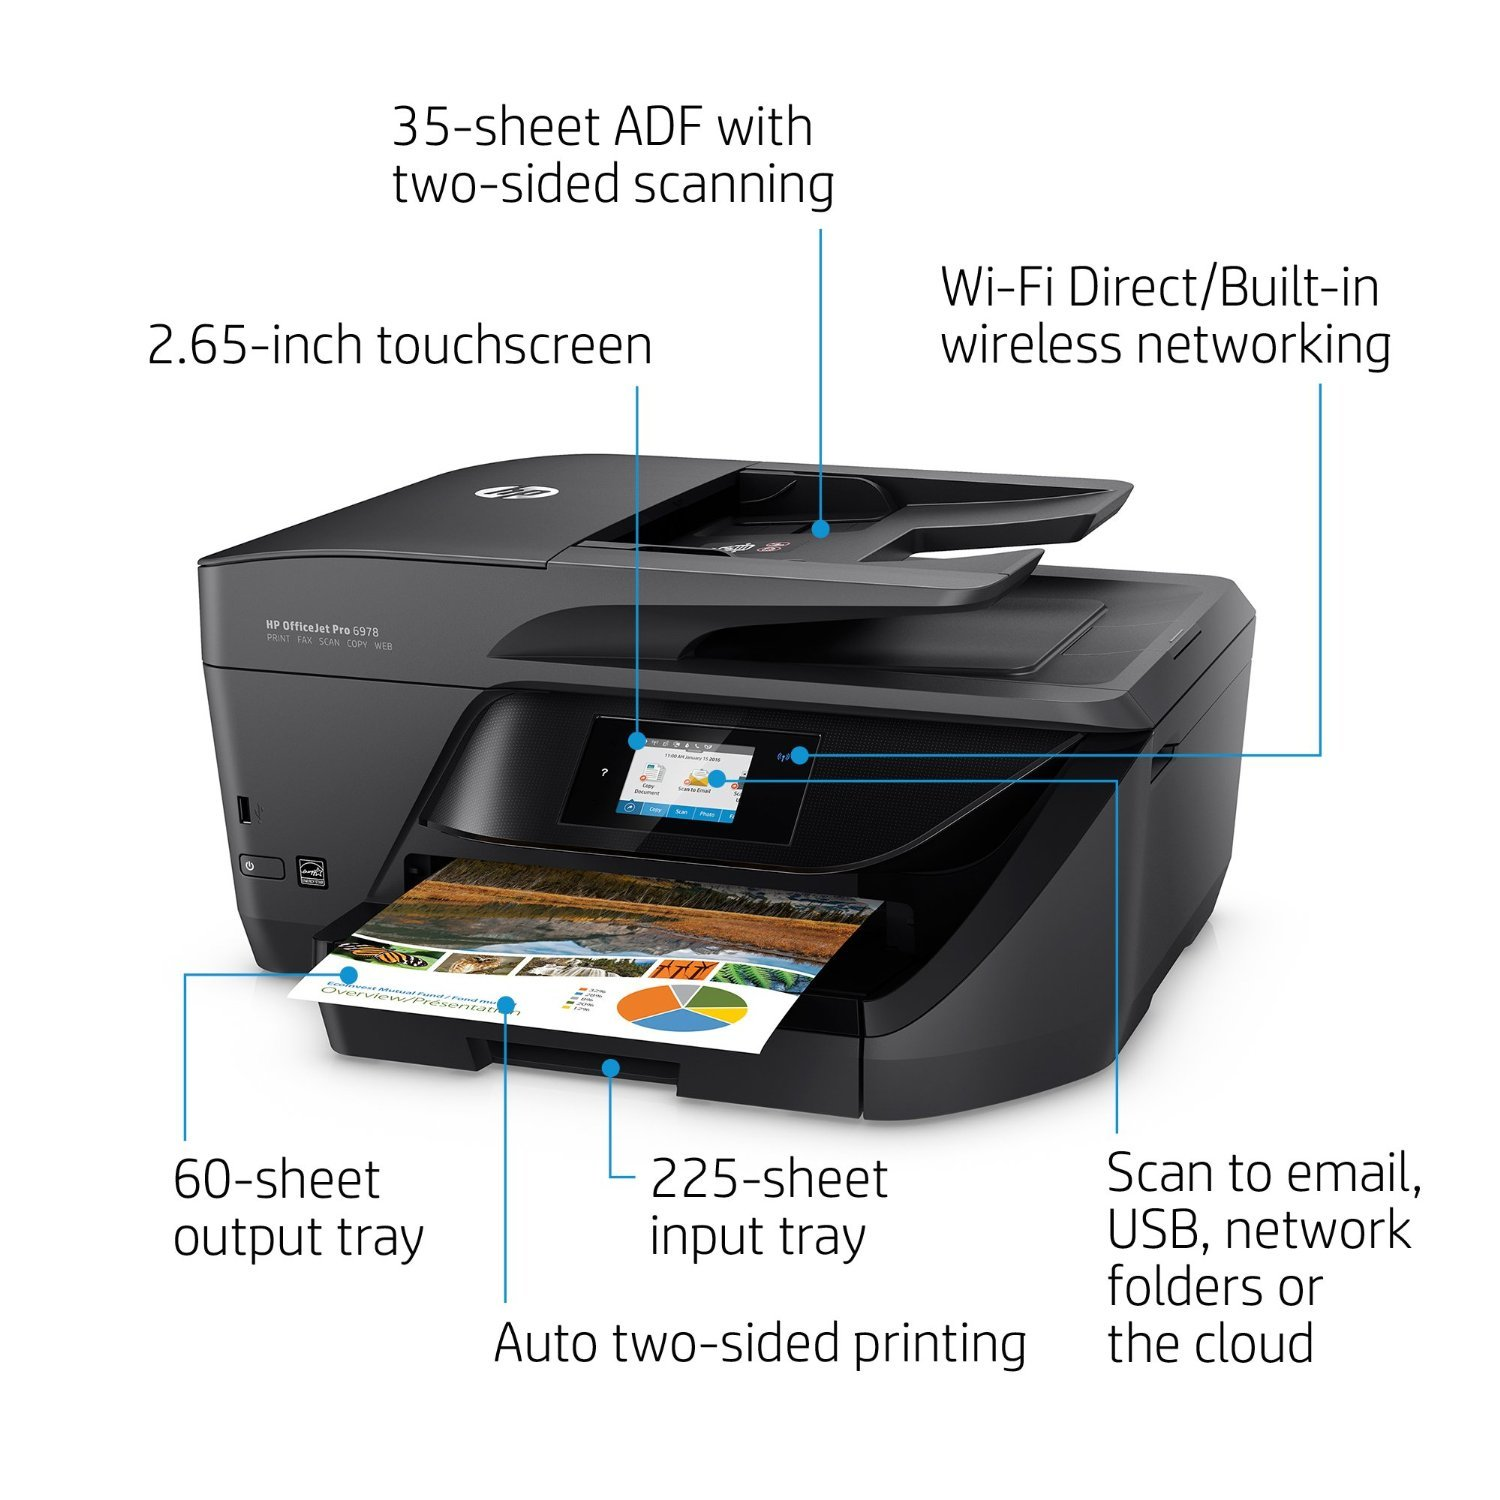 hp officejet pro 6960 all in one printer images at mighty ape nz. Black Bedroom Furniture Sets. Home Design Ideas